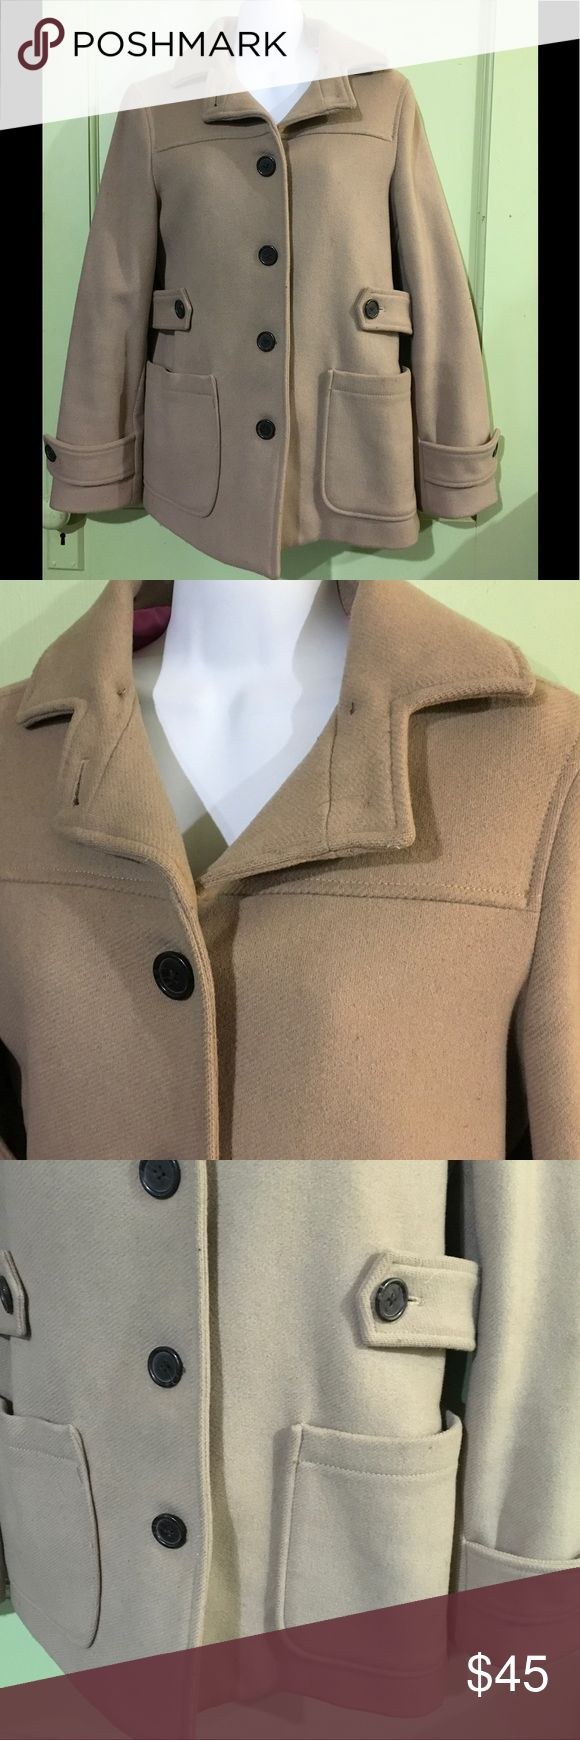 """GAP - Tan Wool Peacoat Gap Jacket   Size: Small  Description: Tan peacoat/jacket. Collar. 4 Button closure on front. 2 open pockets on front. Long sleeve. Jacket is lined. Slit in back. 78% wool/22% nylon.  Condition: Excellent used condition. Very light wear throughout. Dimensions: 18.5"""" from armpit to bottom hem. 17"""" from armpit to armpit. 19"""" from armpit to sleeve hem. 17"""" from shoulder to shoulder.  Inventory Reference: #AL198 GAP Jackets & Coats Pea Coats"""